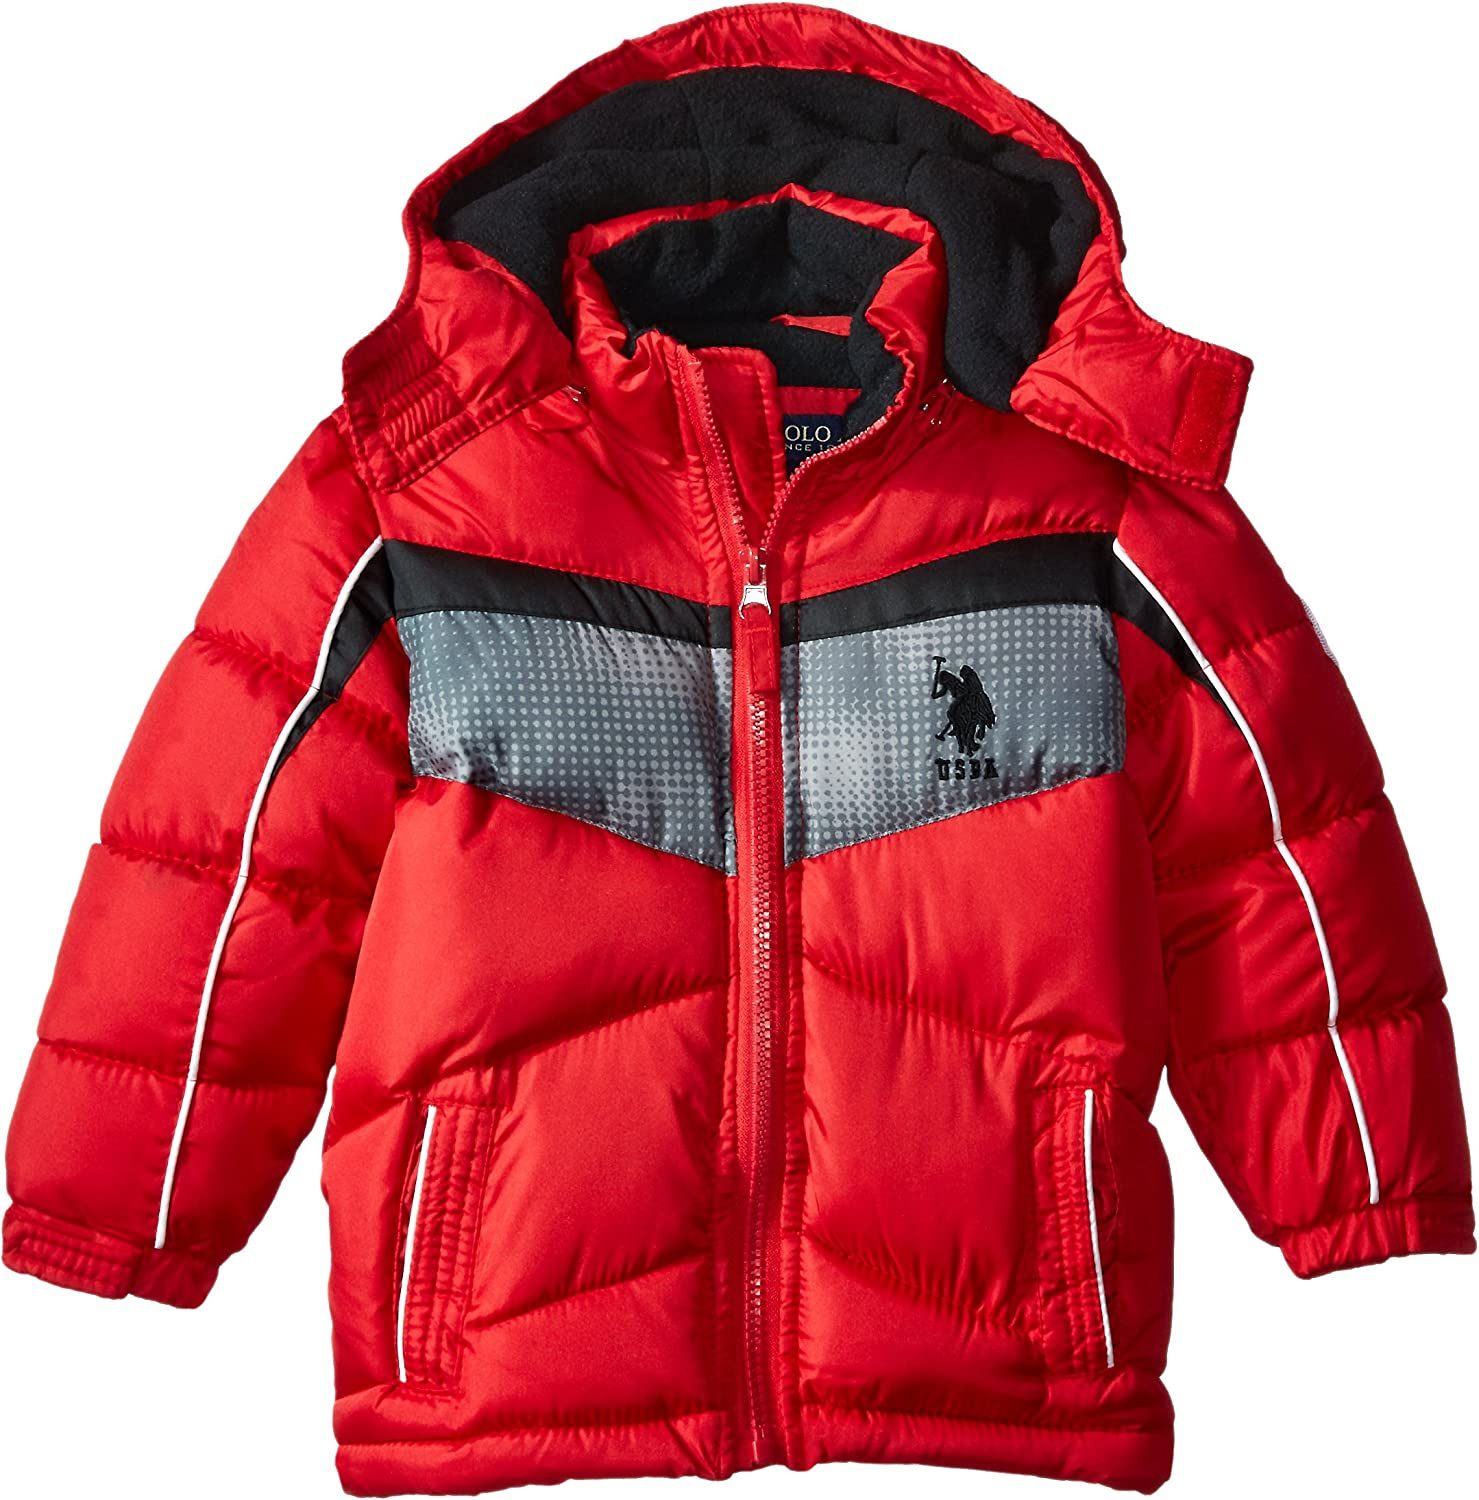 More Styles Available Boys Bubble Jacket U.S Polo Assn